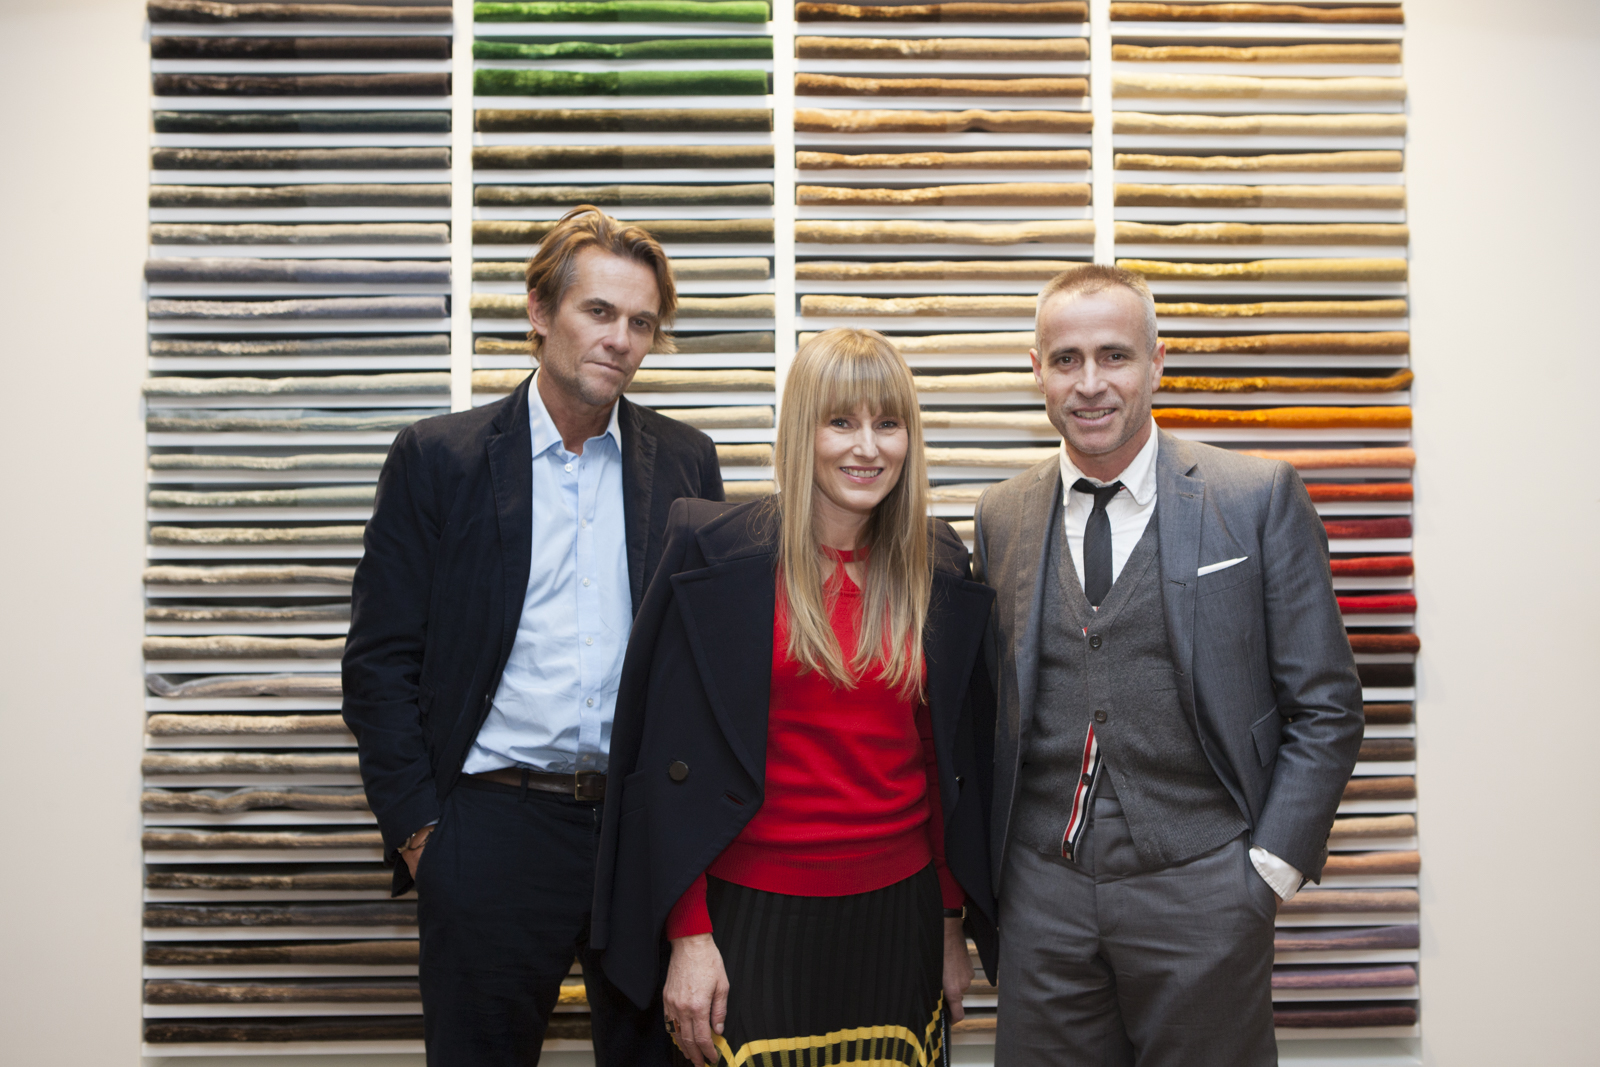 Christopher Sharp, Amy Astley and Thom Browne